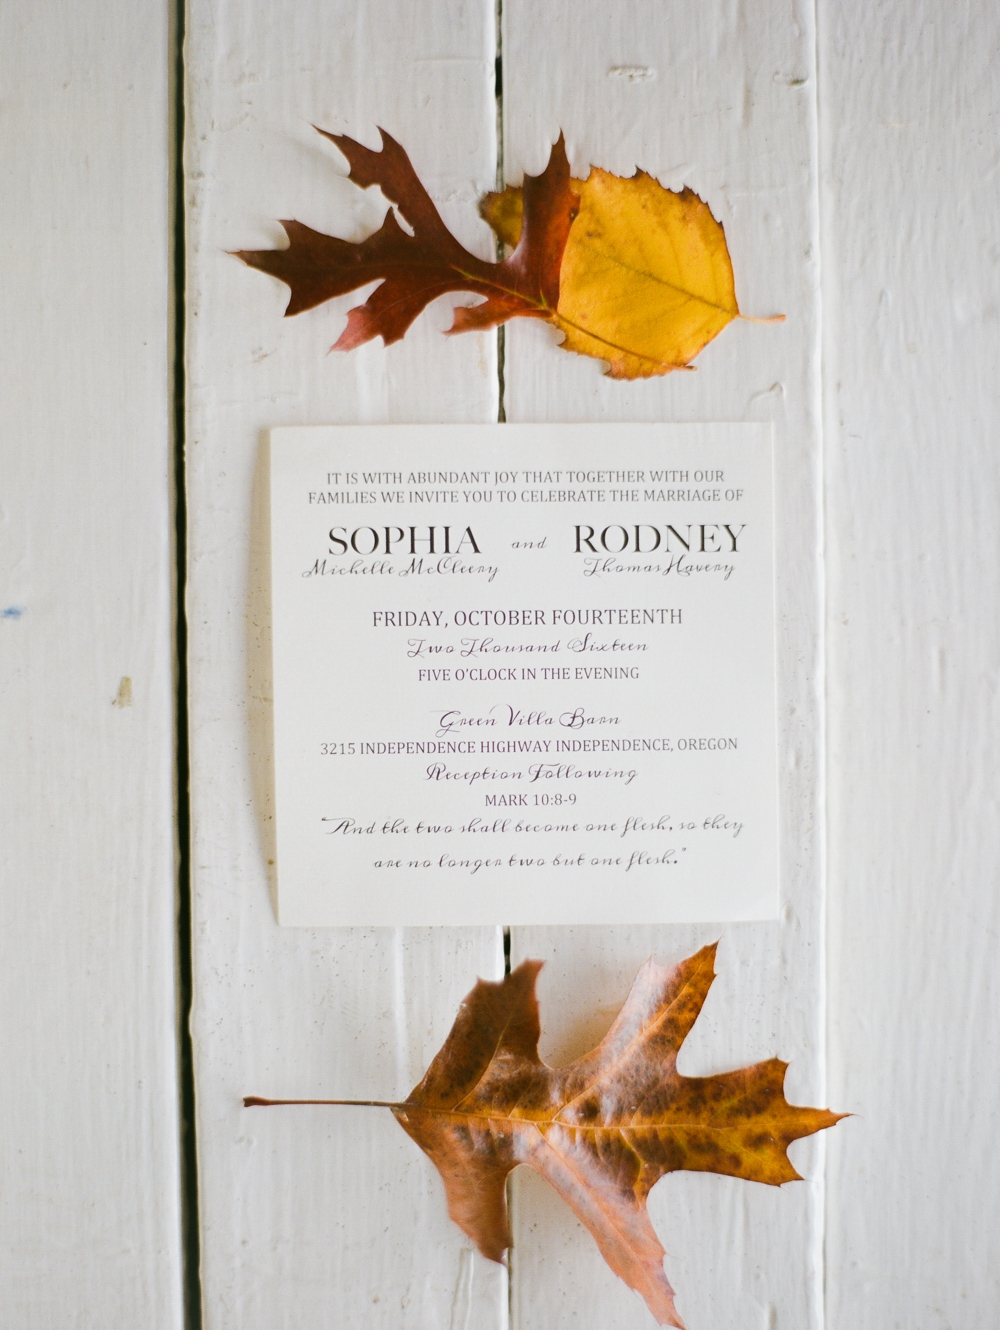 Sophia + Rodney Wedding 1.jpg